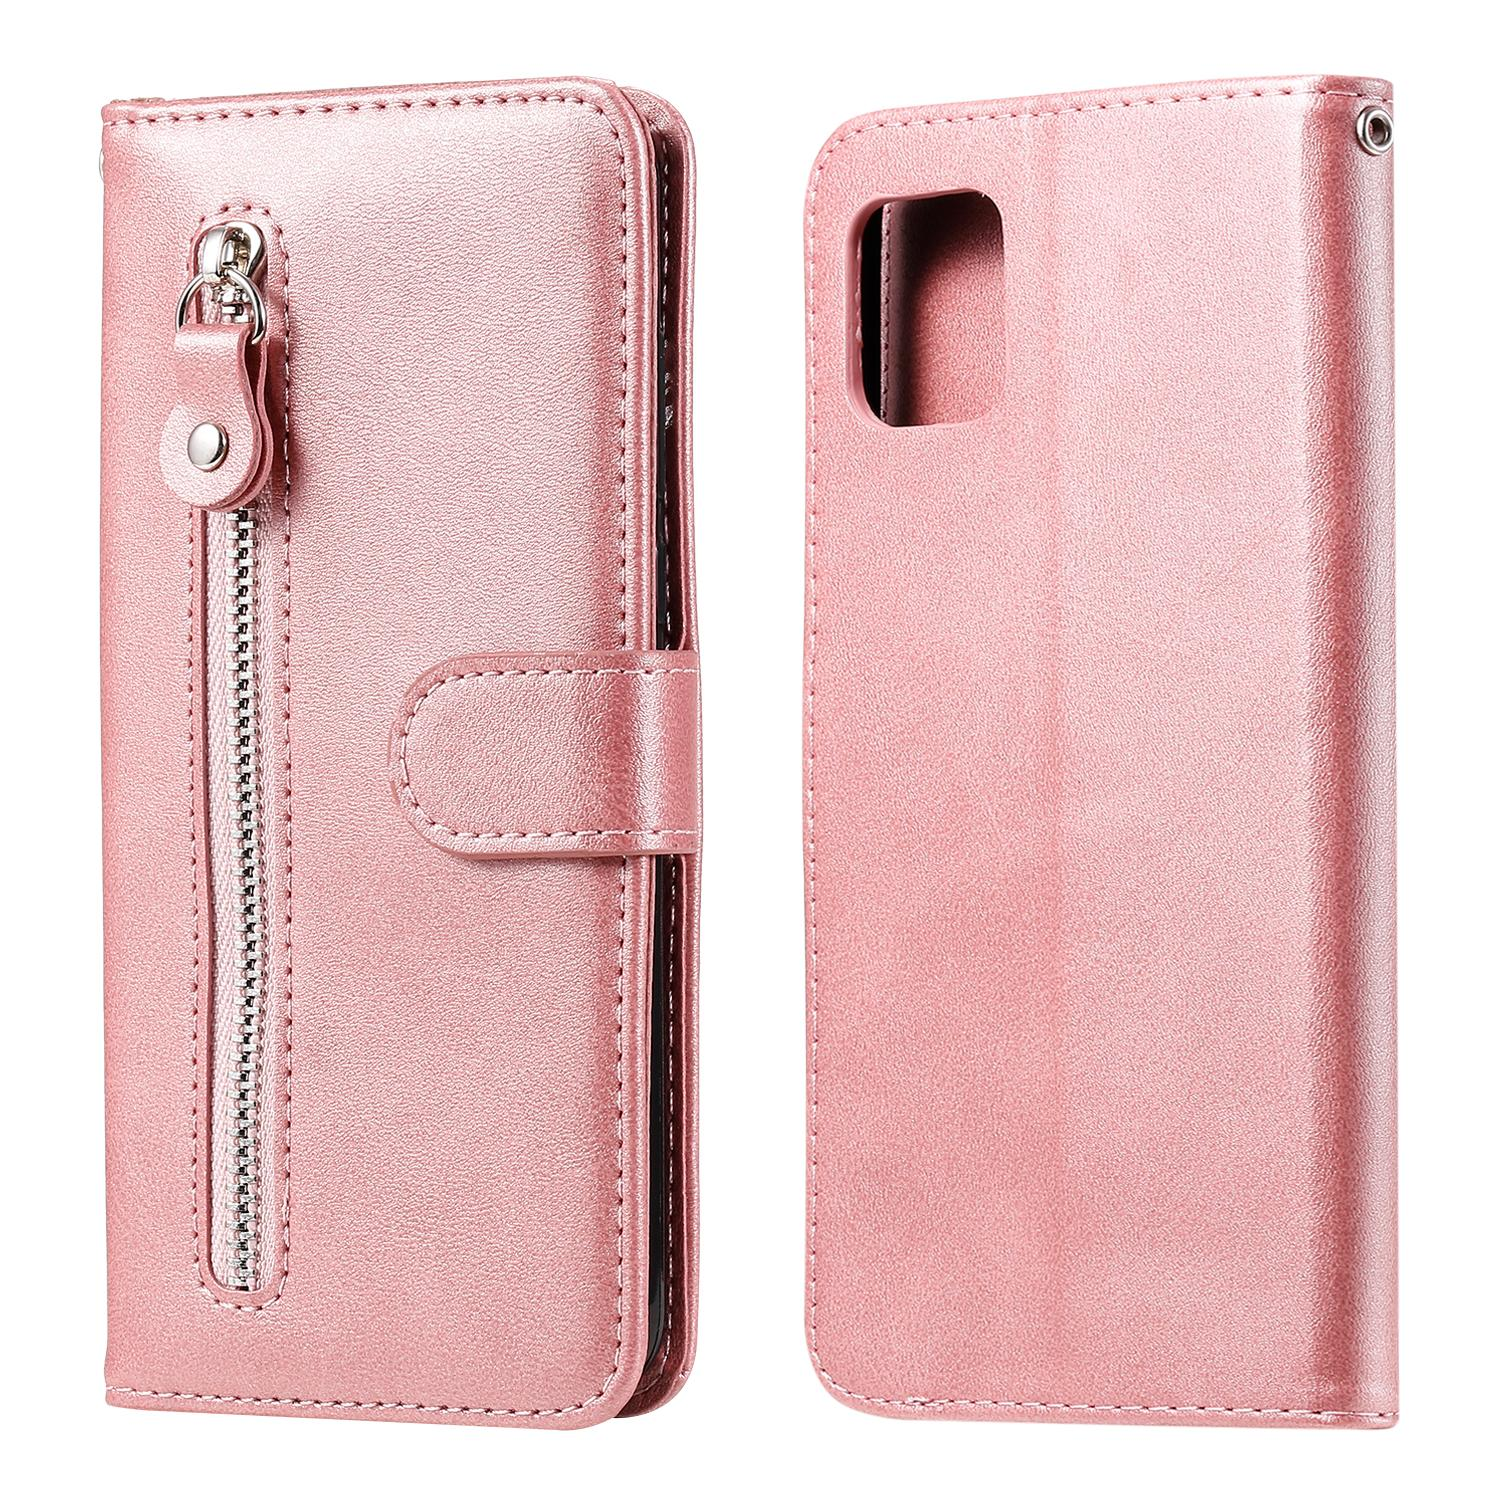 Pure zipper PU Leather case For Samsung Galaxy A81/Note 10 Lite/M60S/A91/S10 Lite/M80S Cover Flip Stand Wallet Card Slot